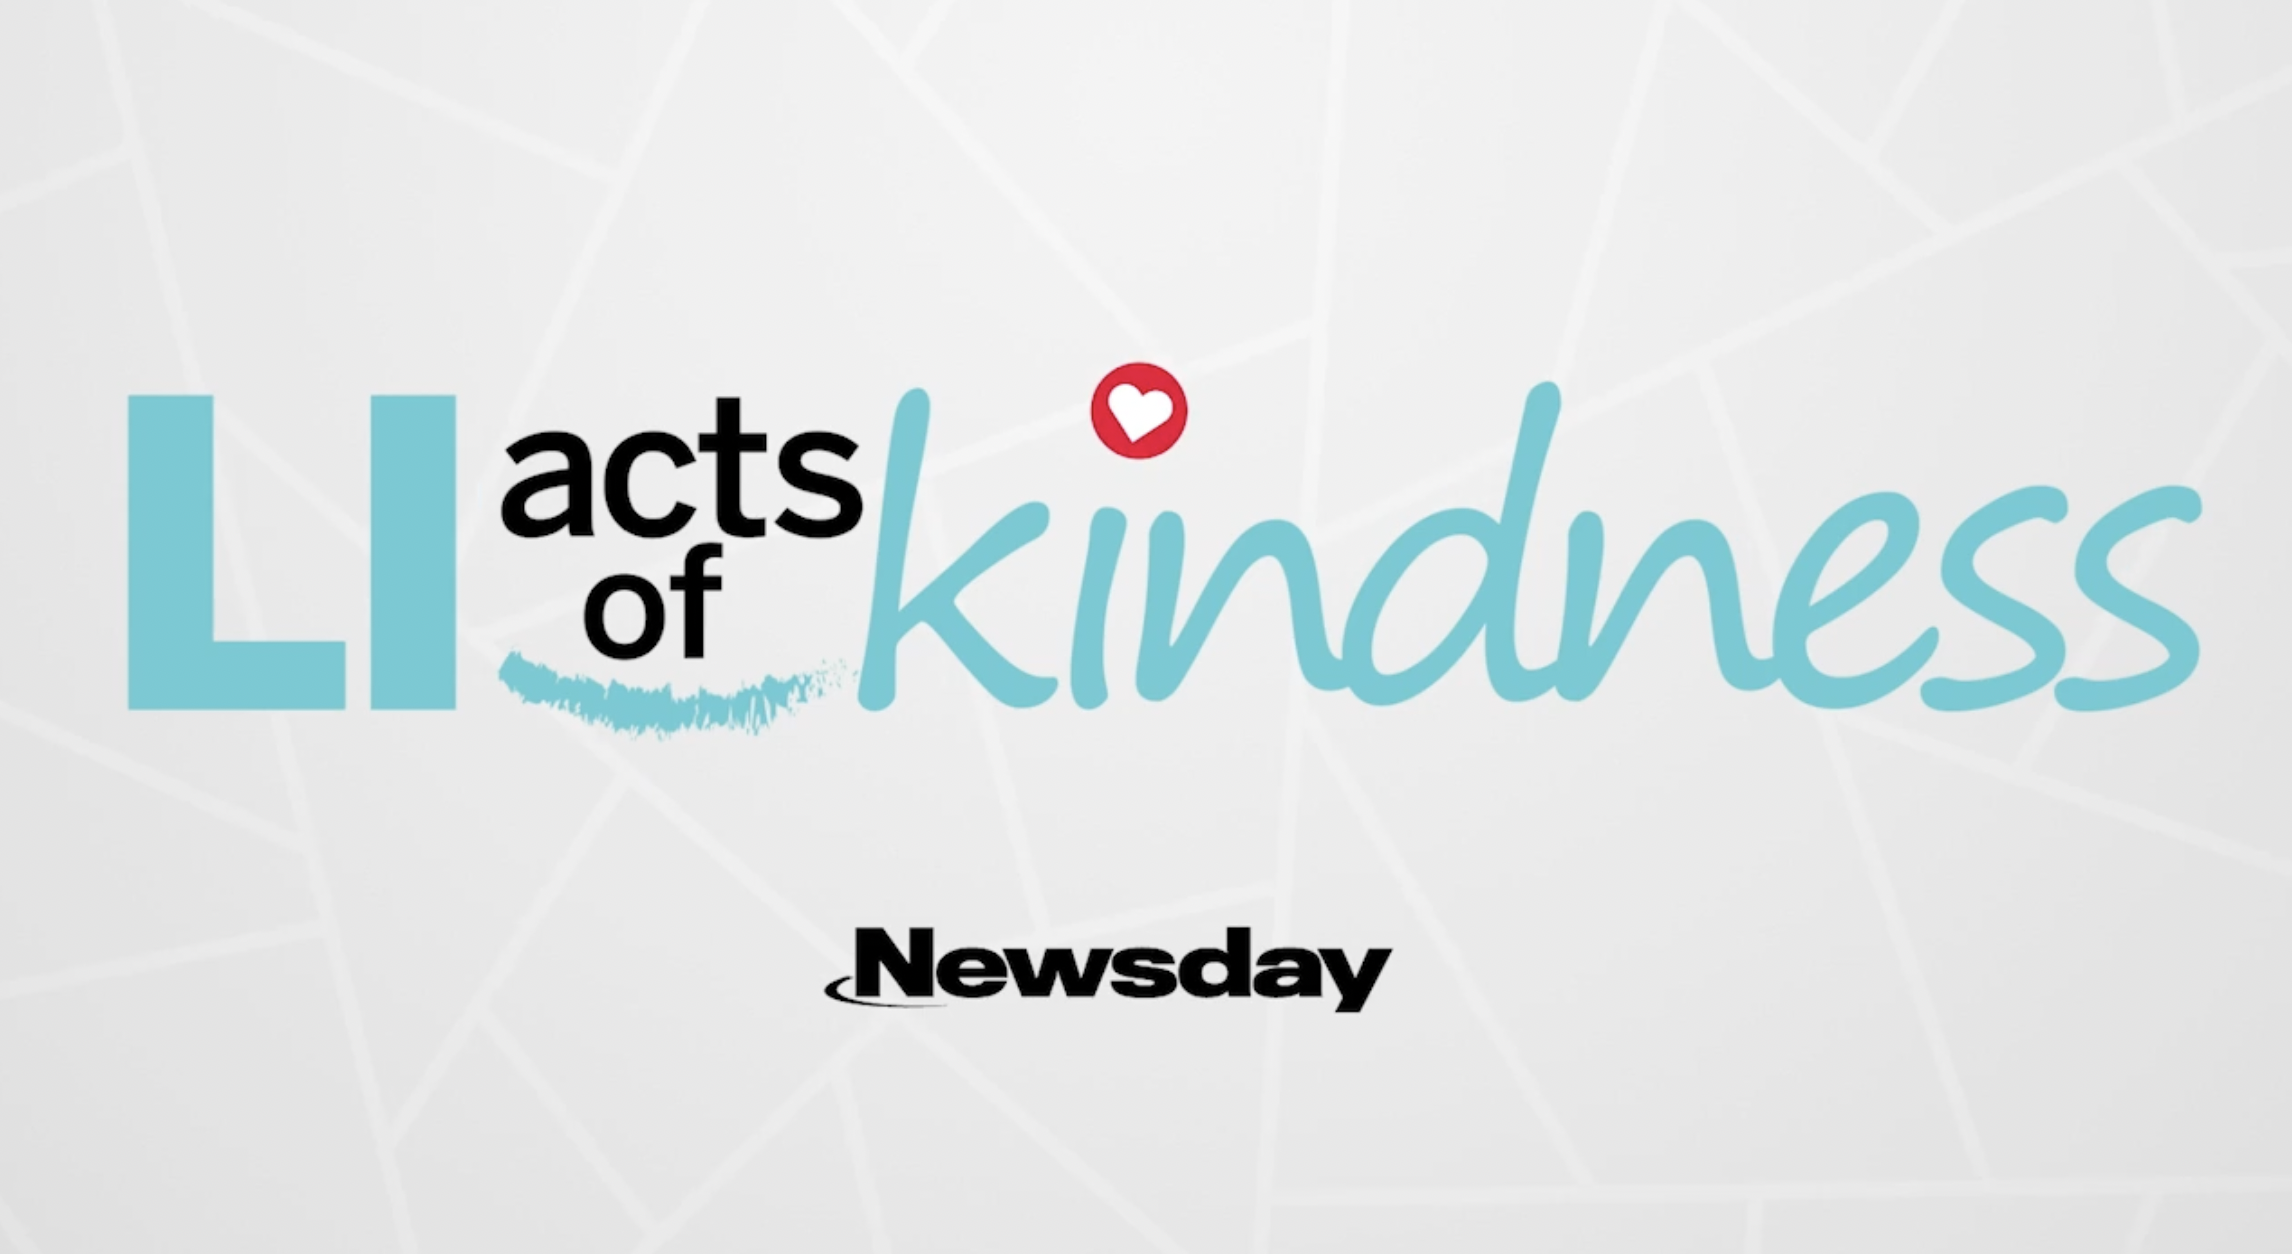 LI Acts of Kindness video series launched in 2020